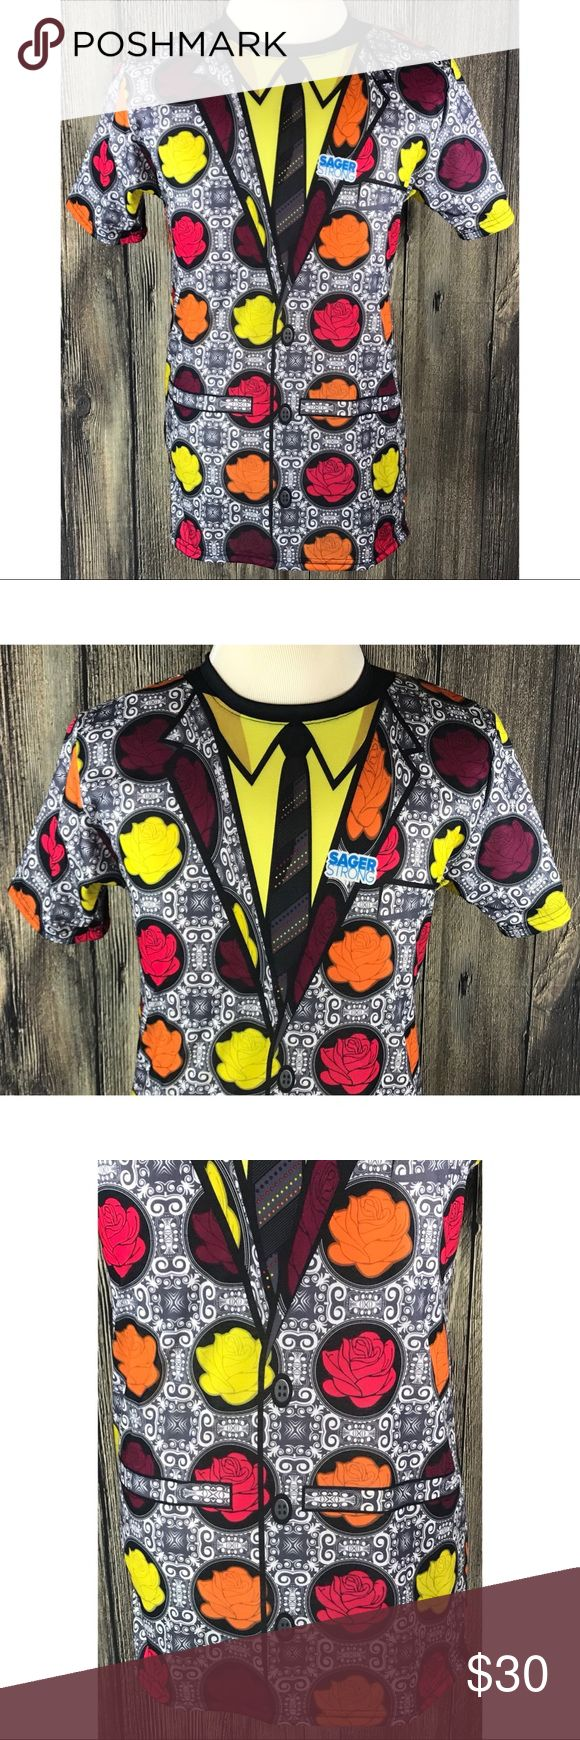 """Craig Sager NBA Sager Strong Cancer Tribute Shirt Craig Sager NBA Basketball Announcer Sager Strong Cancer Tribute Shirt Small 500 Level. New without the tags. Floral tux with black tie in representation of Craig Sanger's stylish sport coats worn during announcing for the NBA. Measurements are approximate arm pit to arm pit laying flat 19""""; shoulders 17""""; sleeves 8""""; length 29.5"""". Shirts Tees - Short Sleeve"""